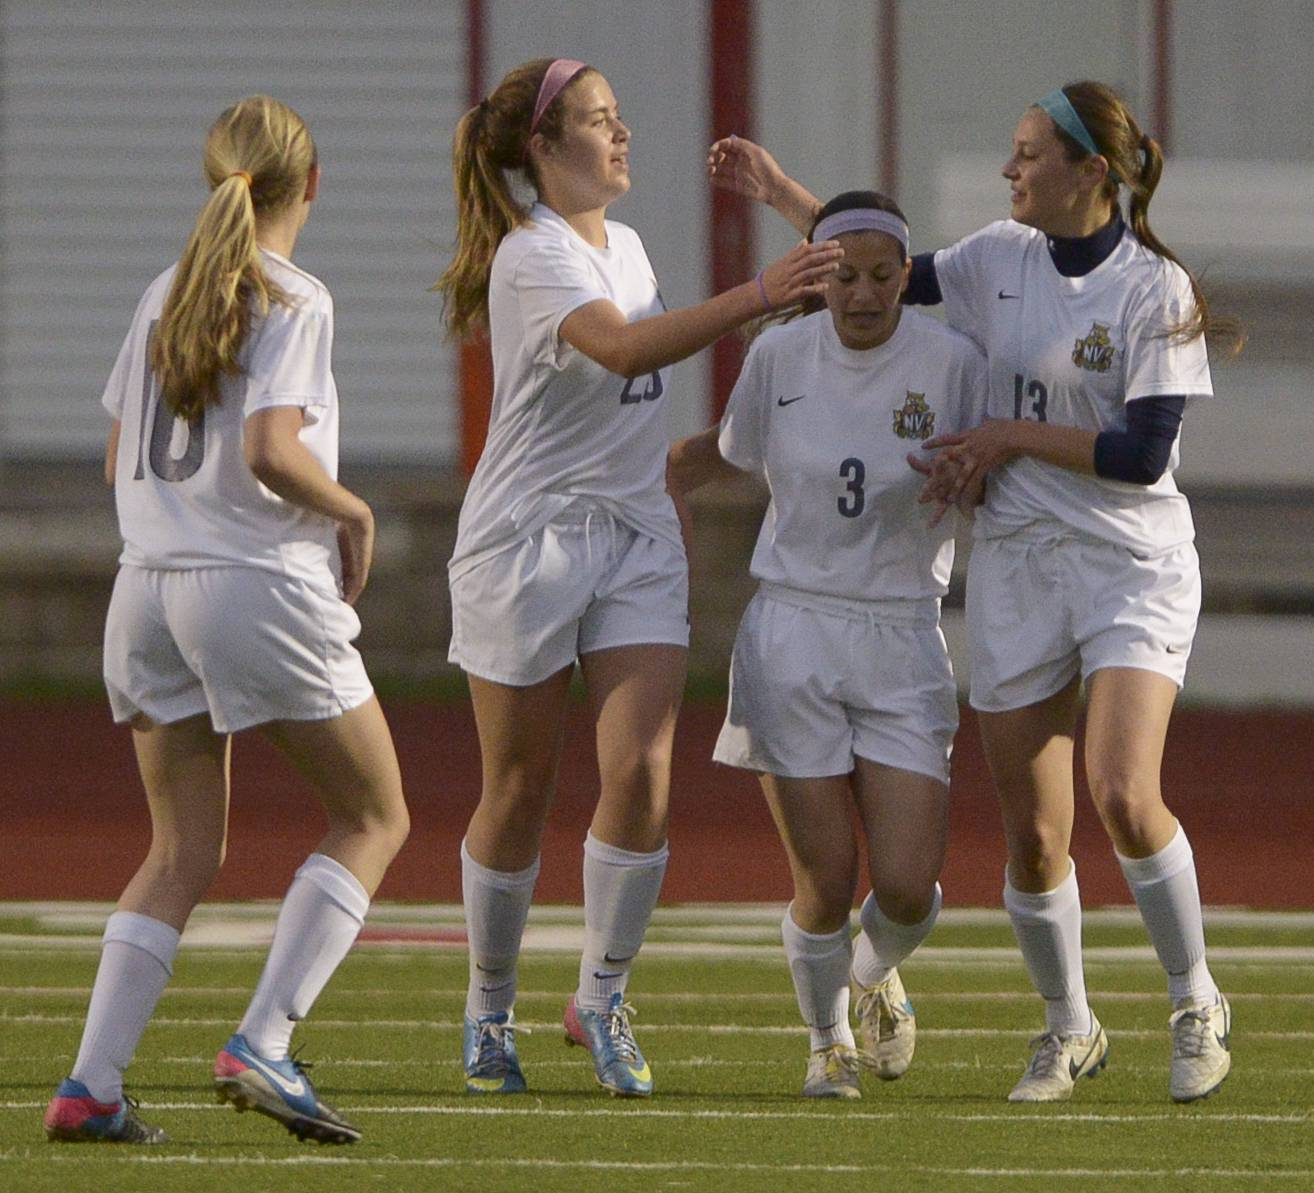 Neuqua Valley's Allie Fullreide (23) is congratulated by teammates after scoring a goal during the 2014 Naperville girls soccer invitational Thursday.